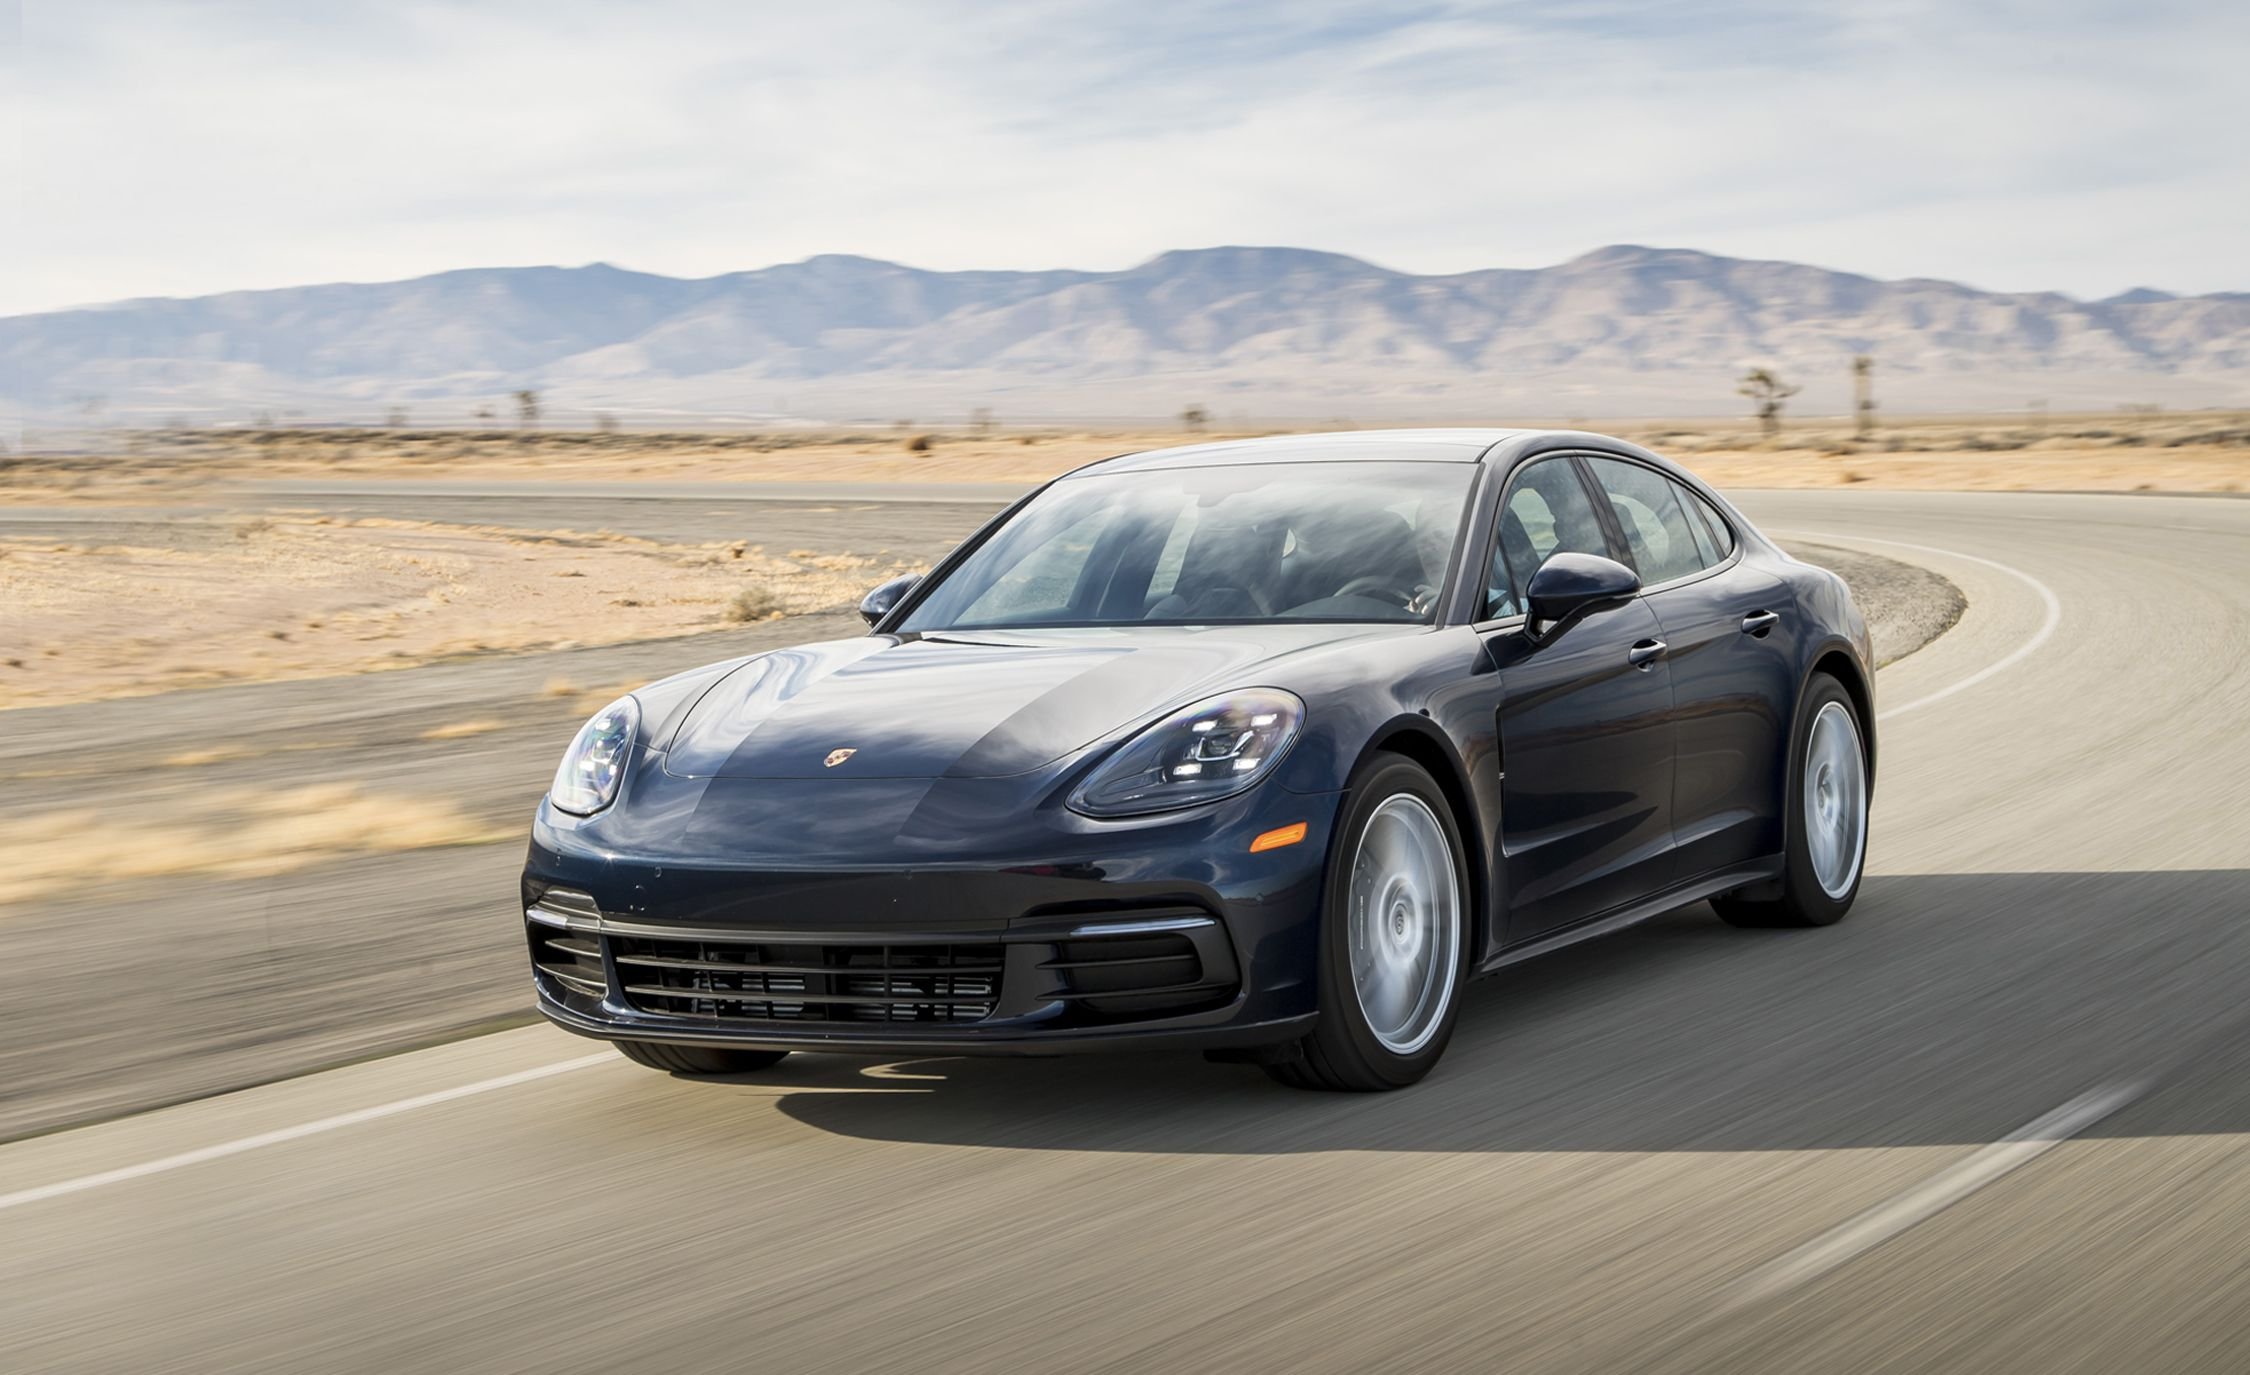 15 A 2020 The Porsche Panamera Wallpaper